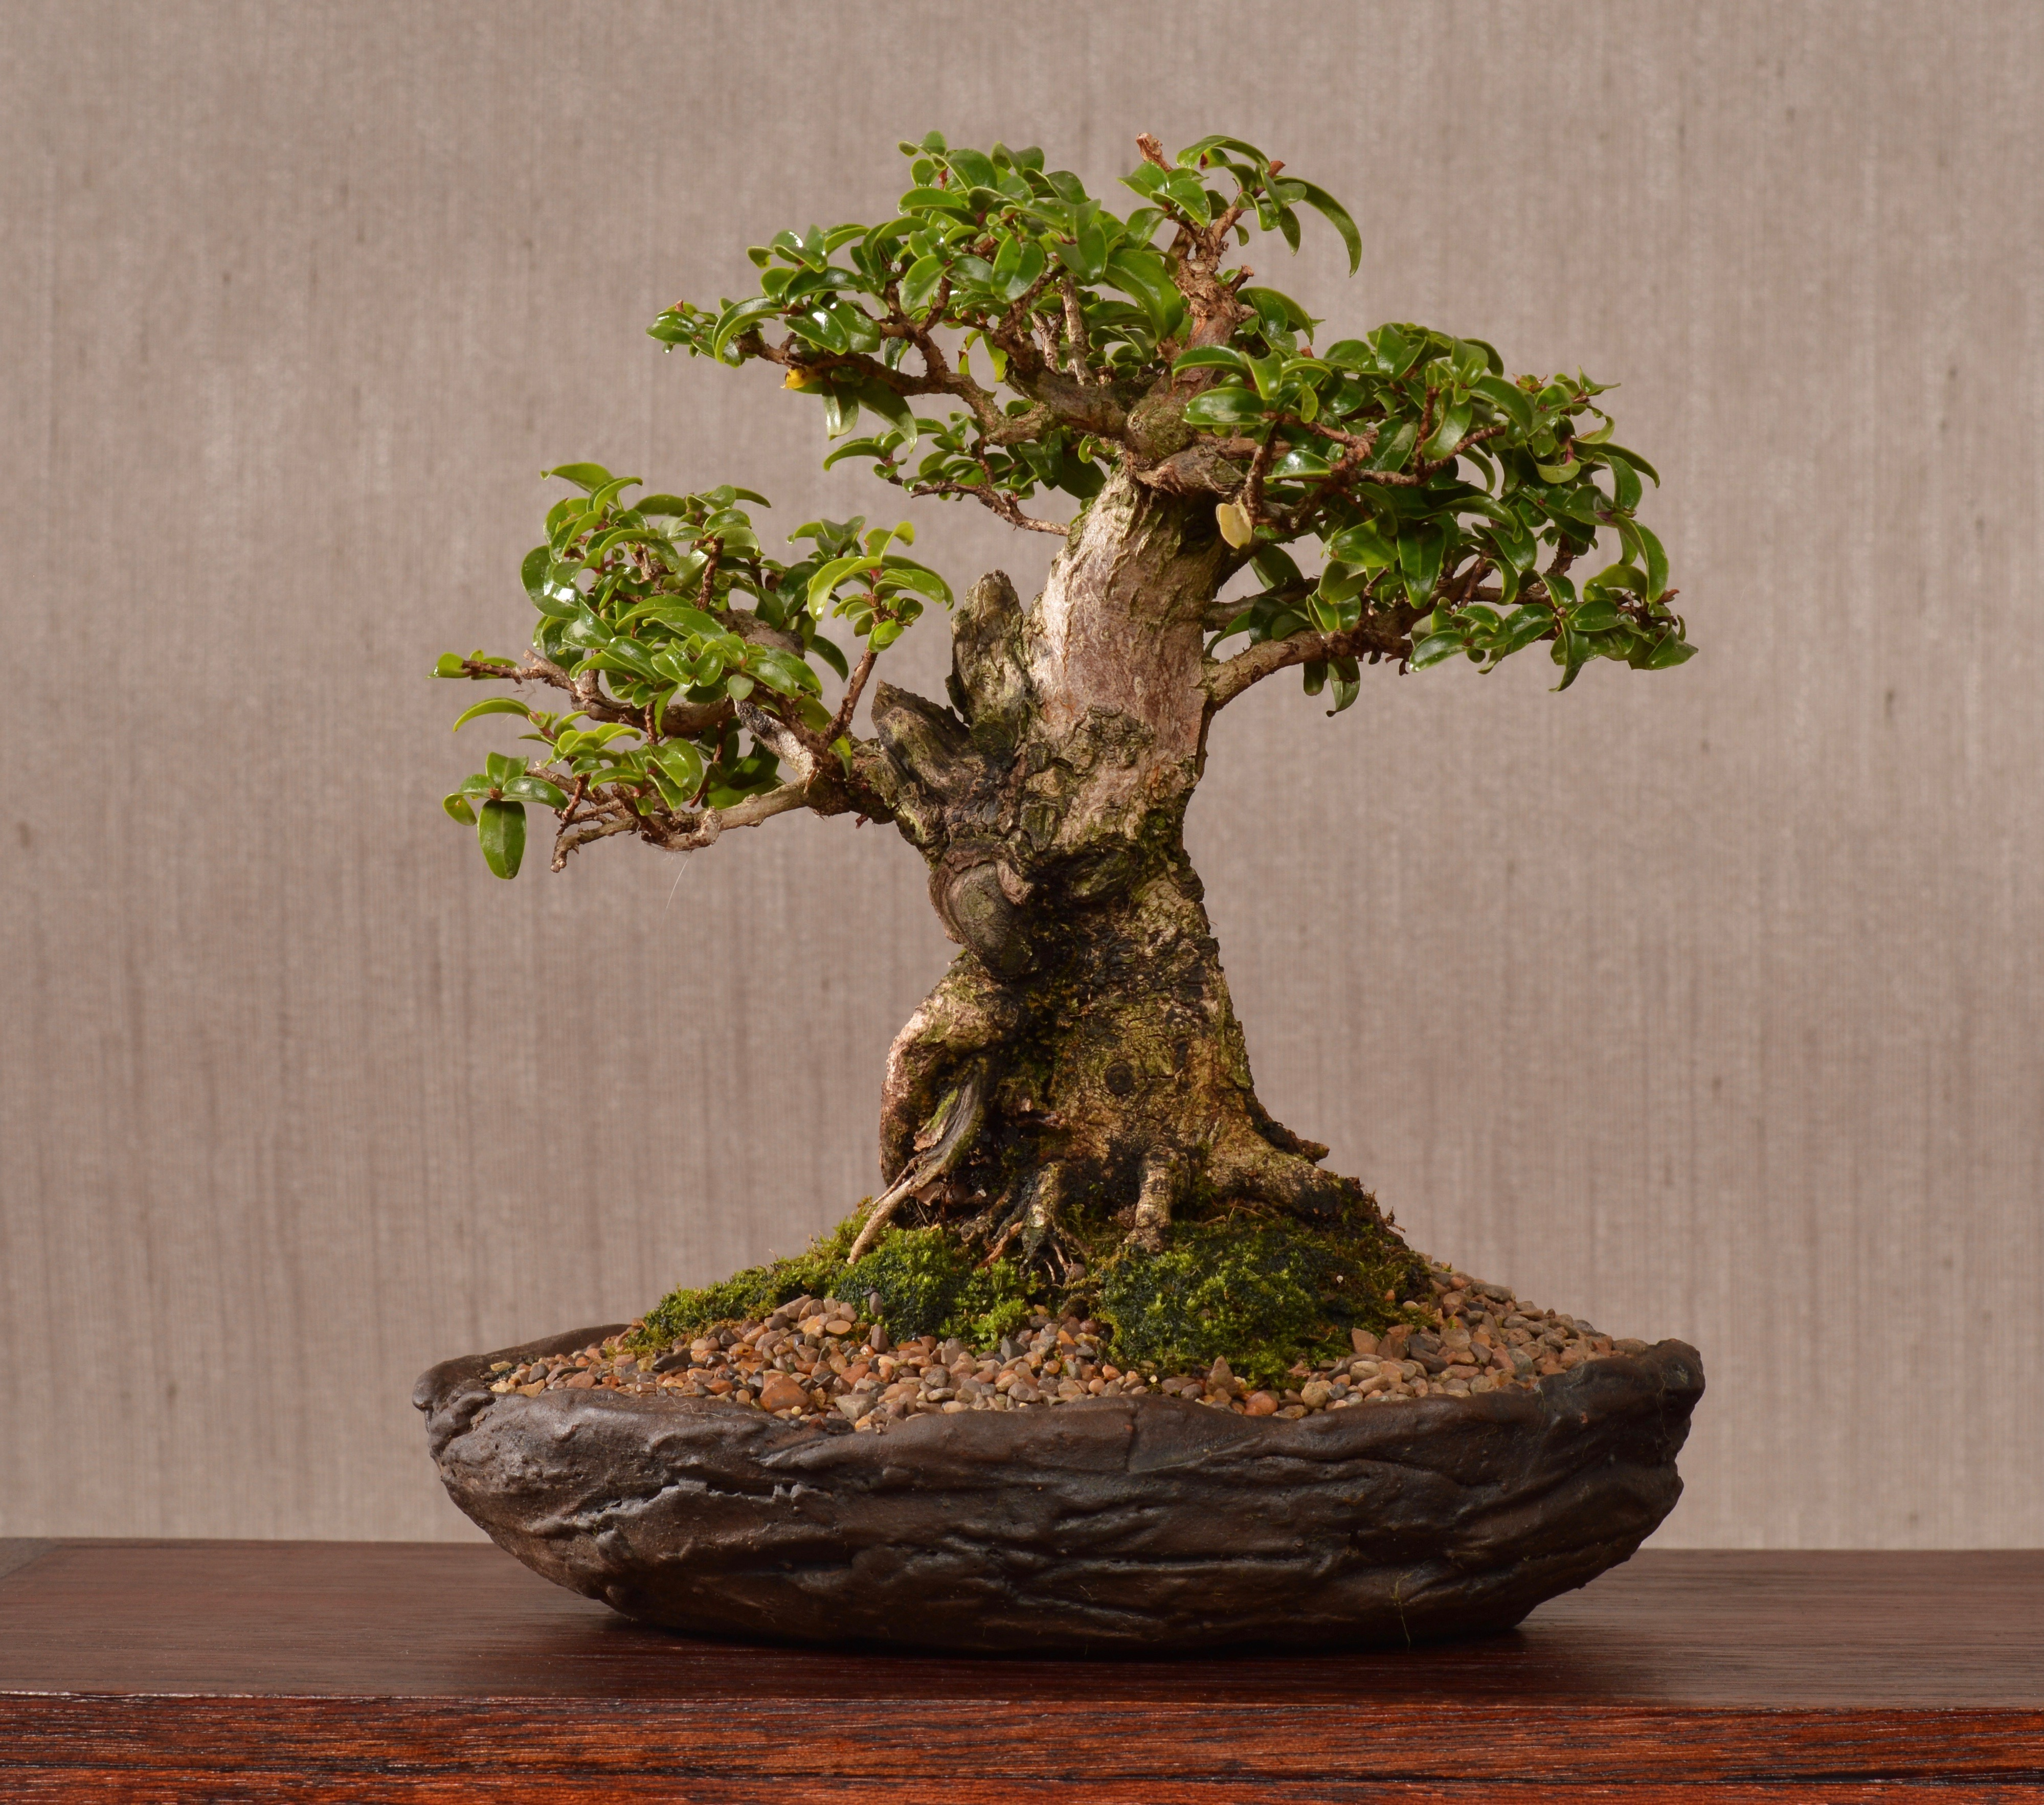 Ficus craterostoma on rock (Mame)